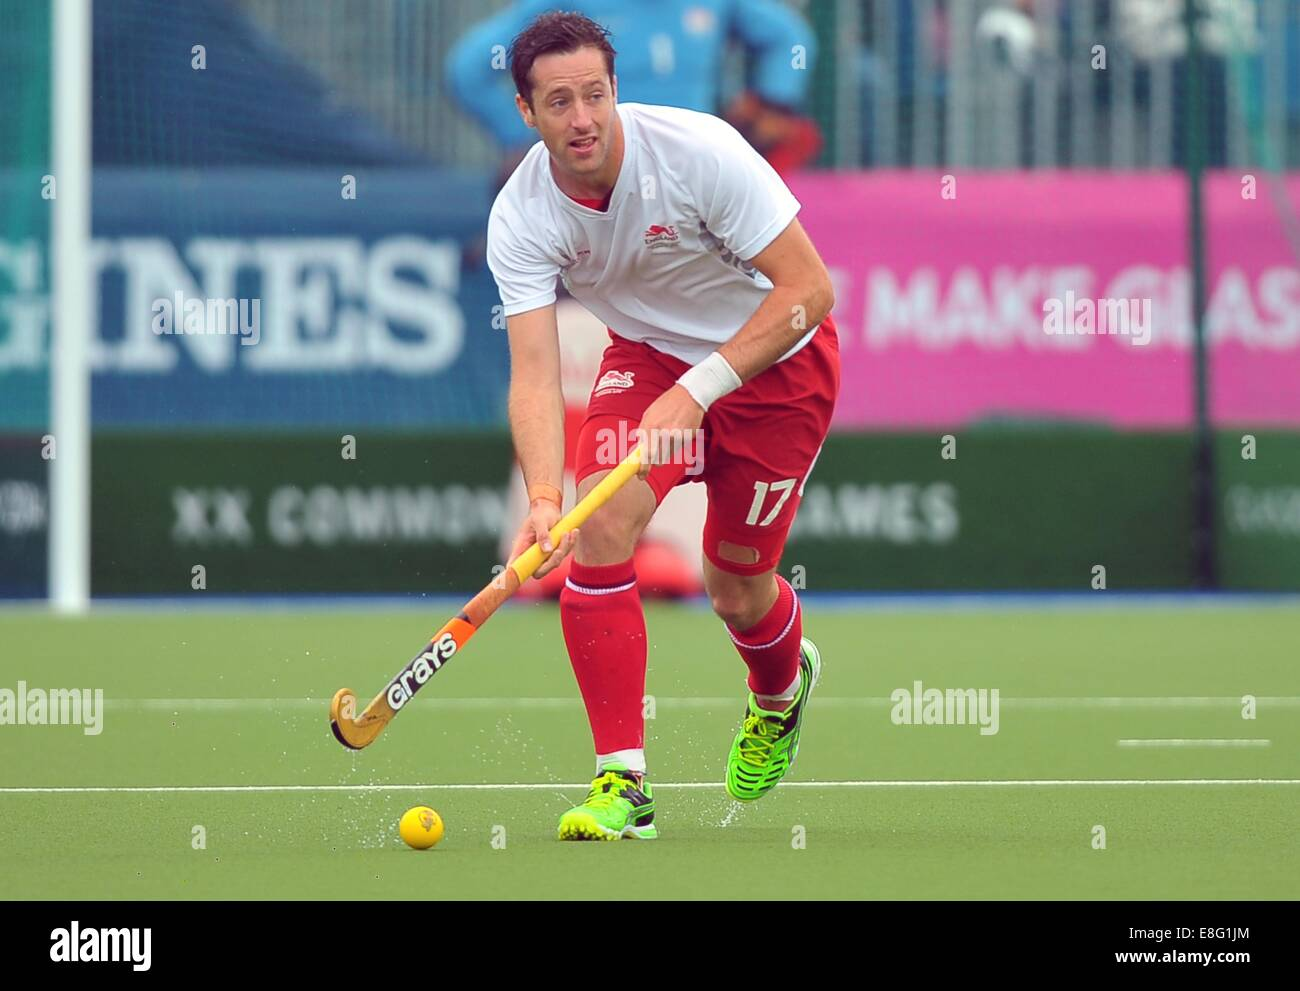 Iain Lewers (ENG). England (ENG) v Australia (AUS). Mens semi-final. Hockey. Glasgow national hockey centre, Glasgow, - Stock Image